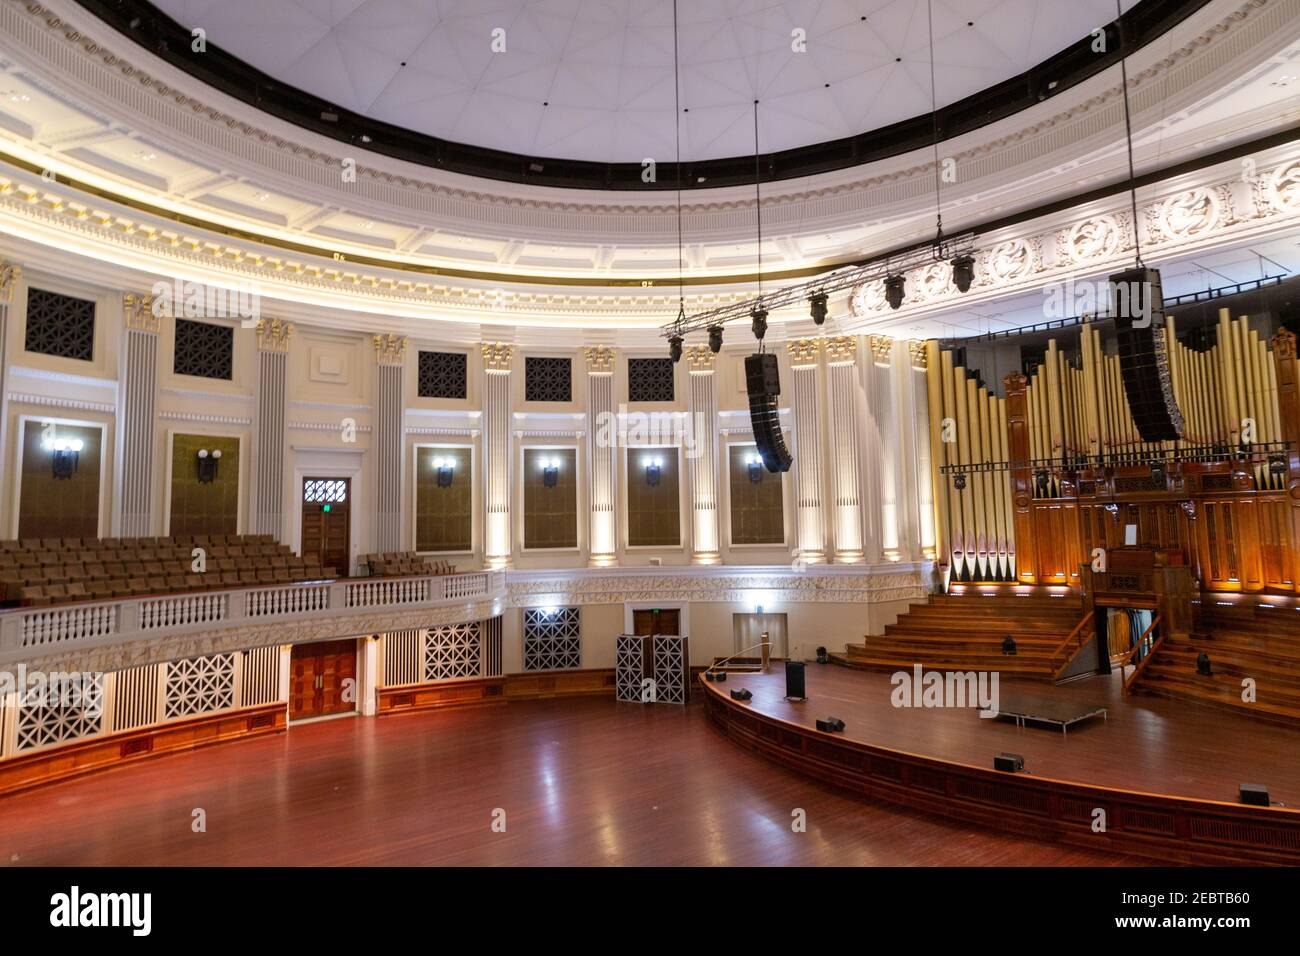 brisban city hall The Main Auditorium and its circular design with fluted pilasters around the perimeter is based on the Pantheon of Rome.   a five-ma Stock Photo